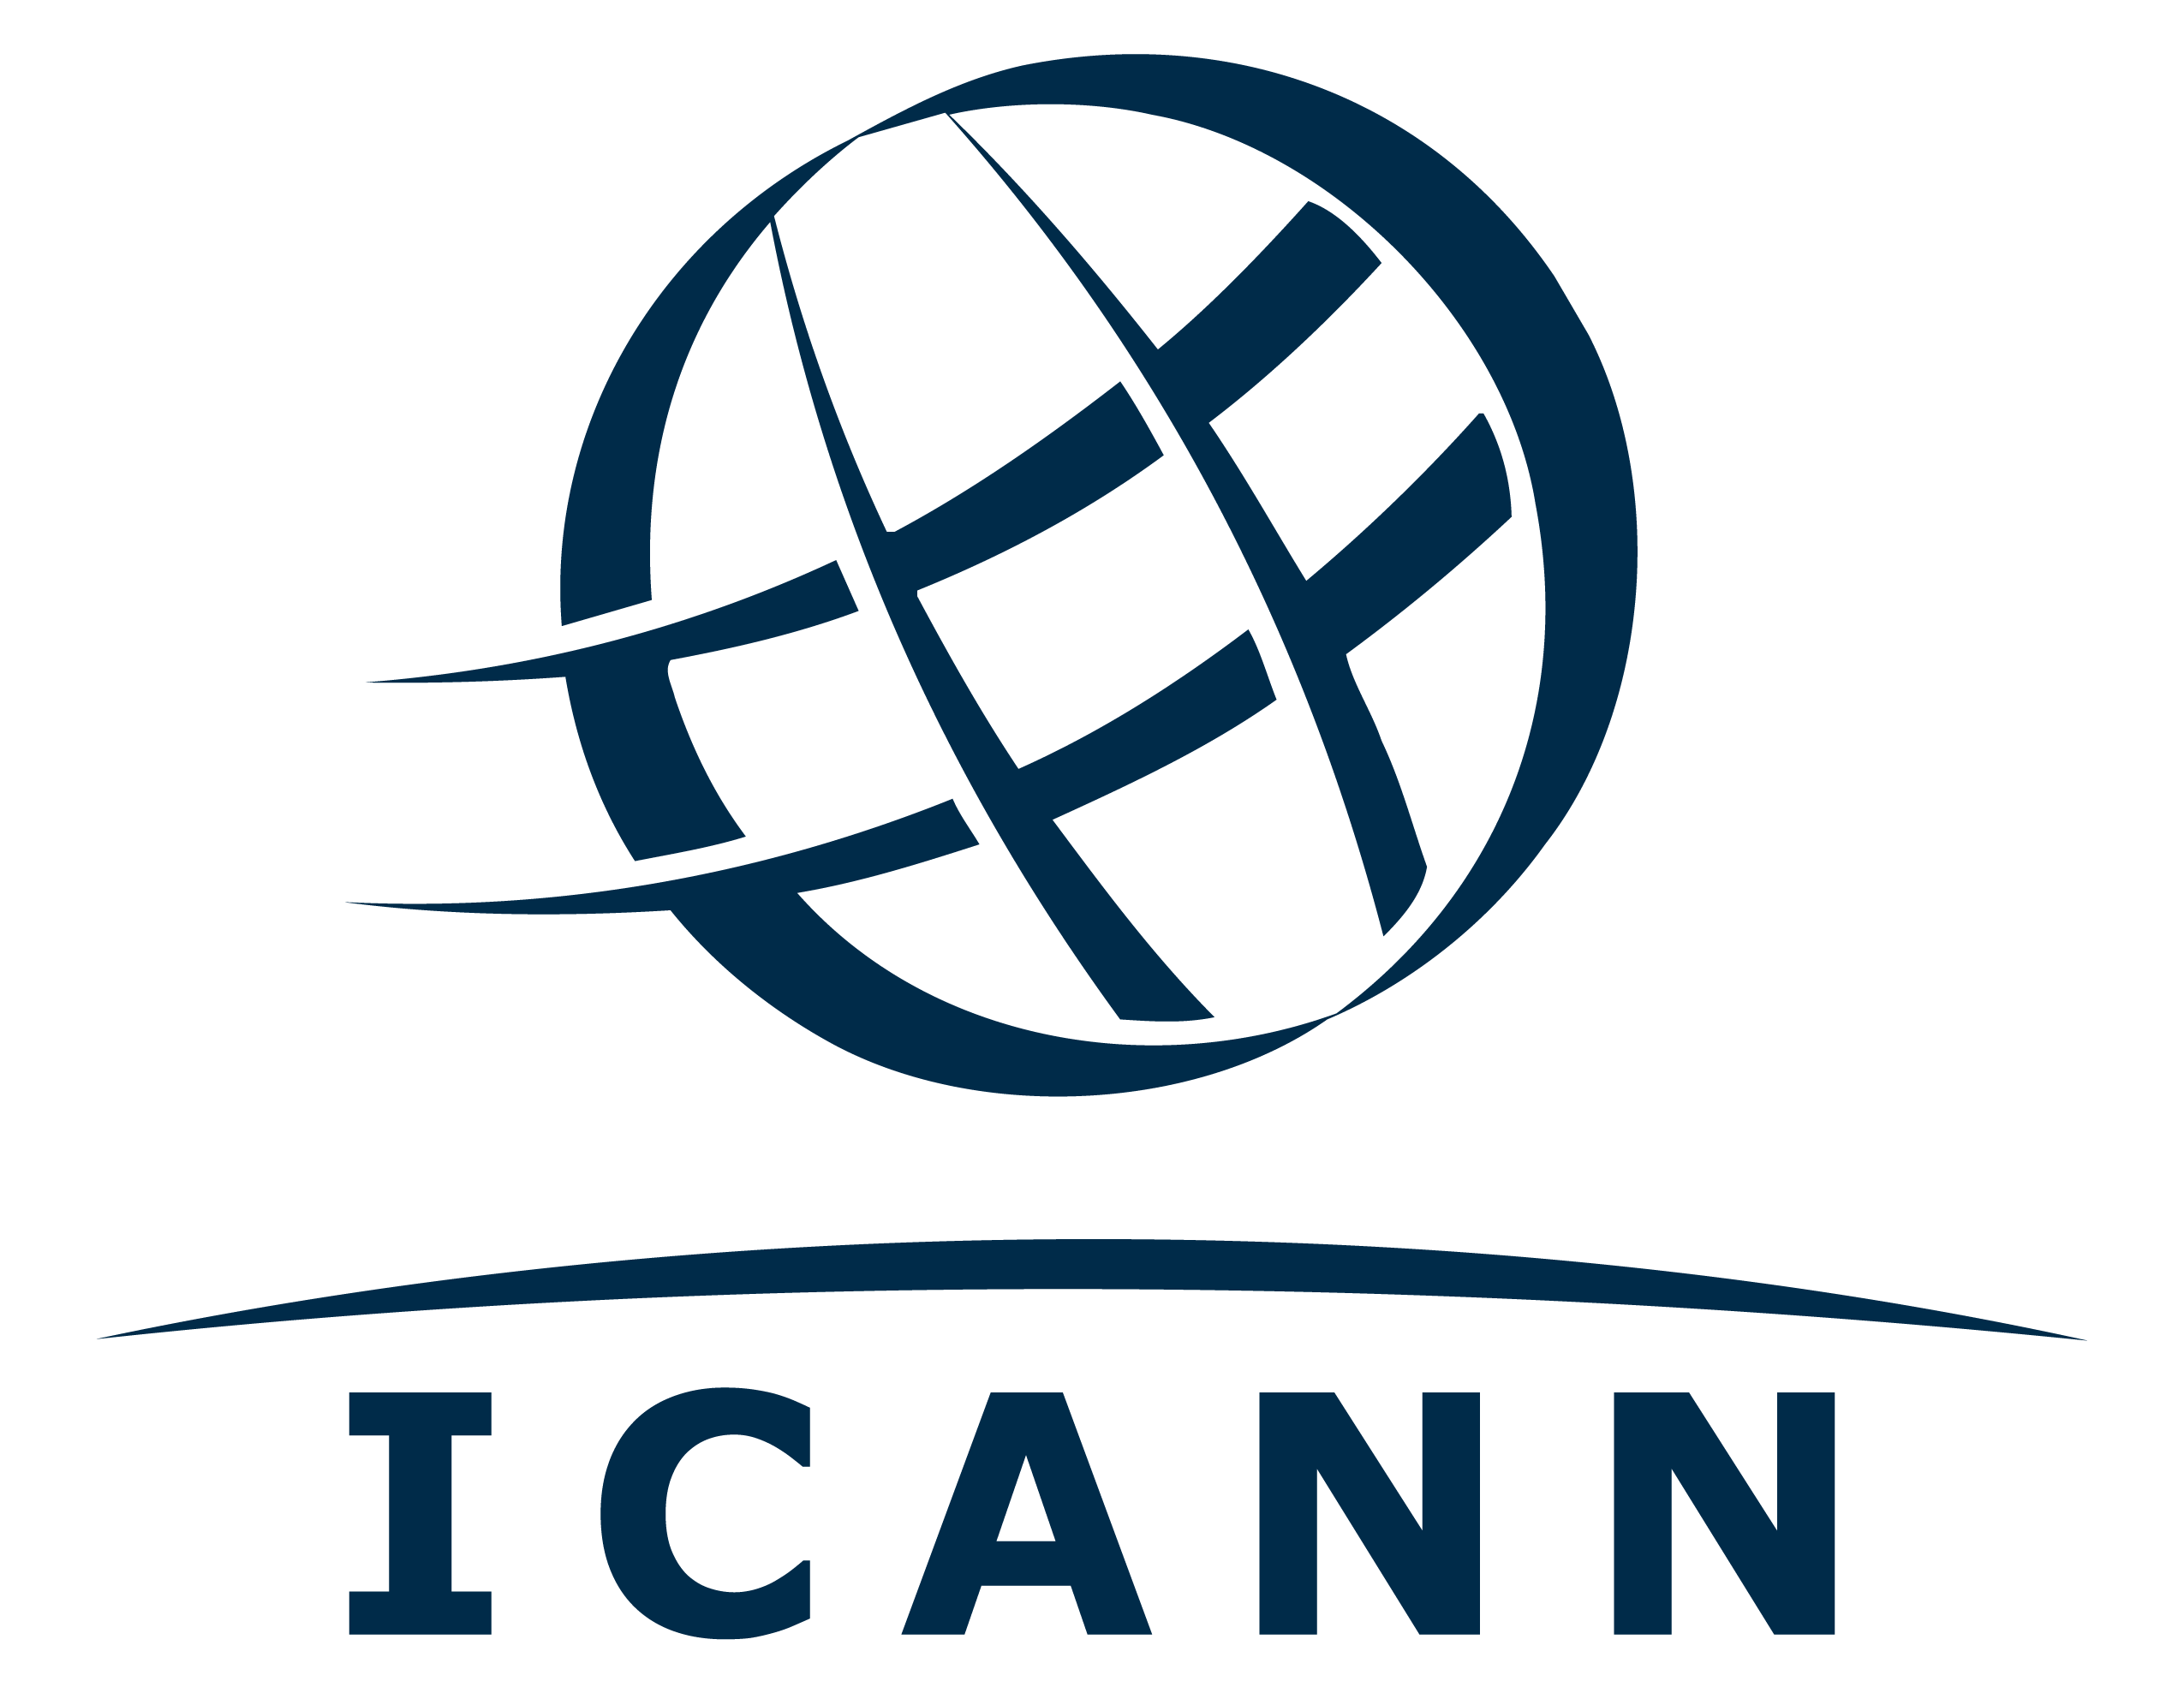 ICANNLogo.png